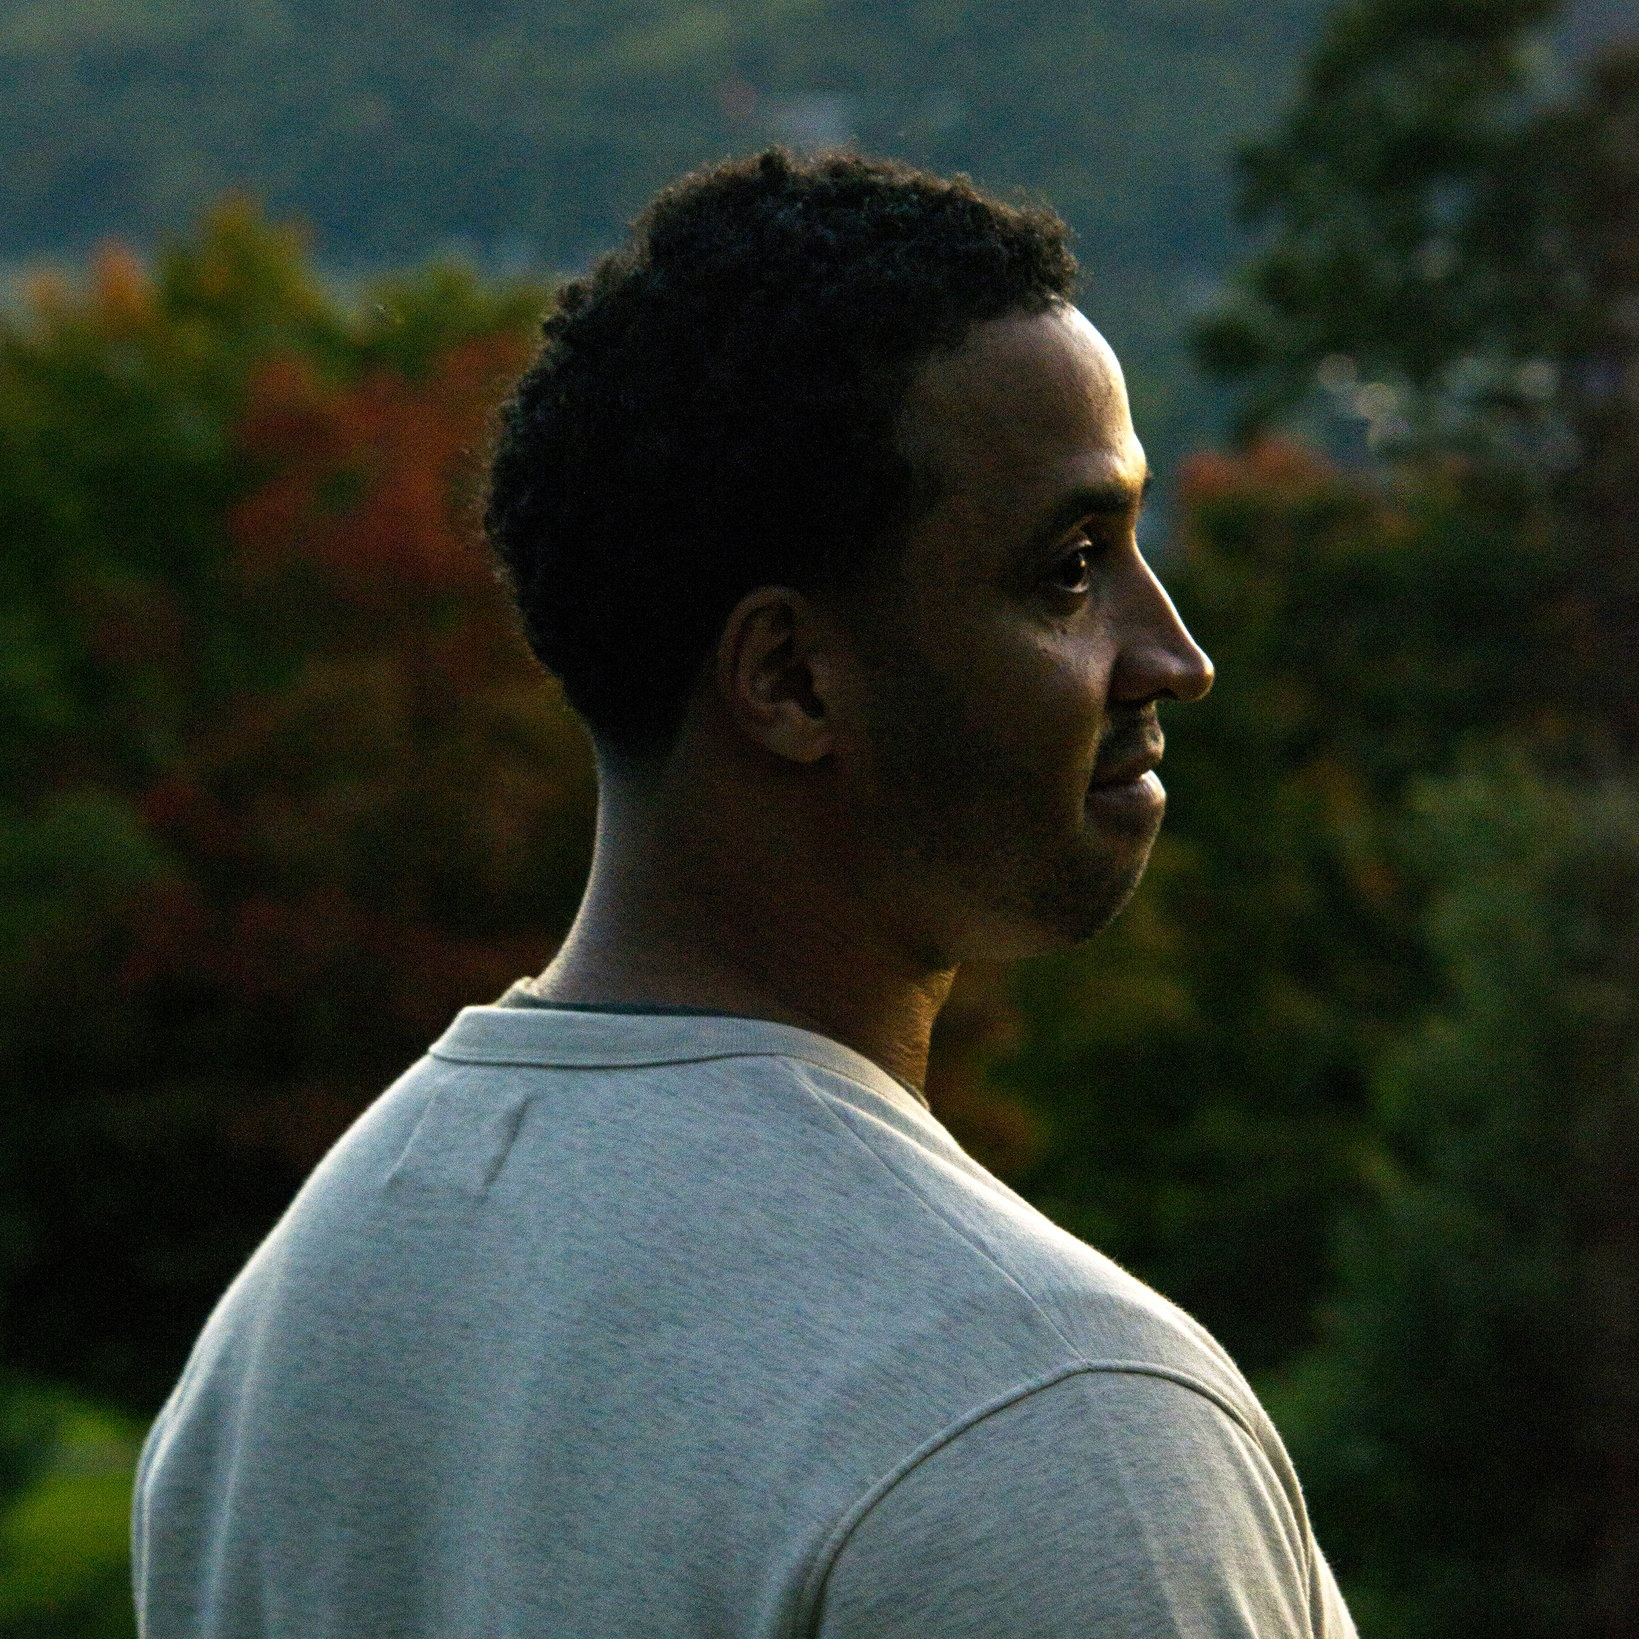 The author, Darnell Epps. After serving 17 years in prison, he is now a full-time student at Cornell. Credit: Shane Lavalette for The New York Times